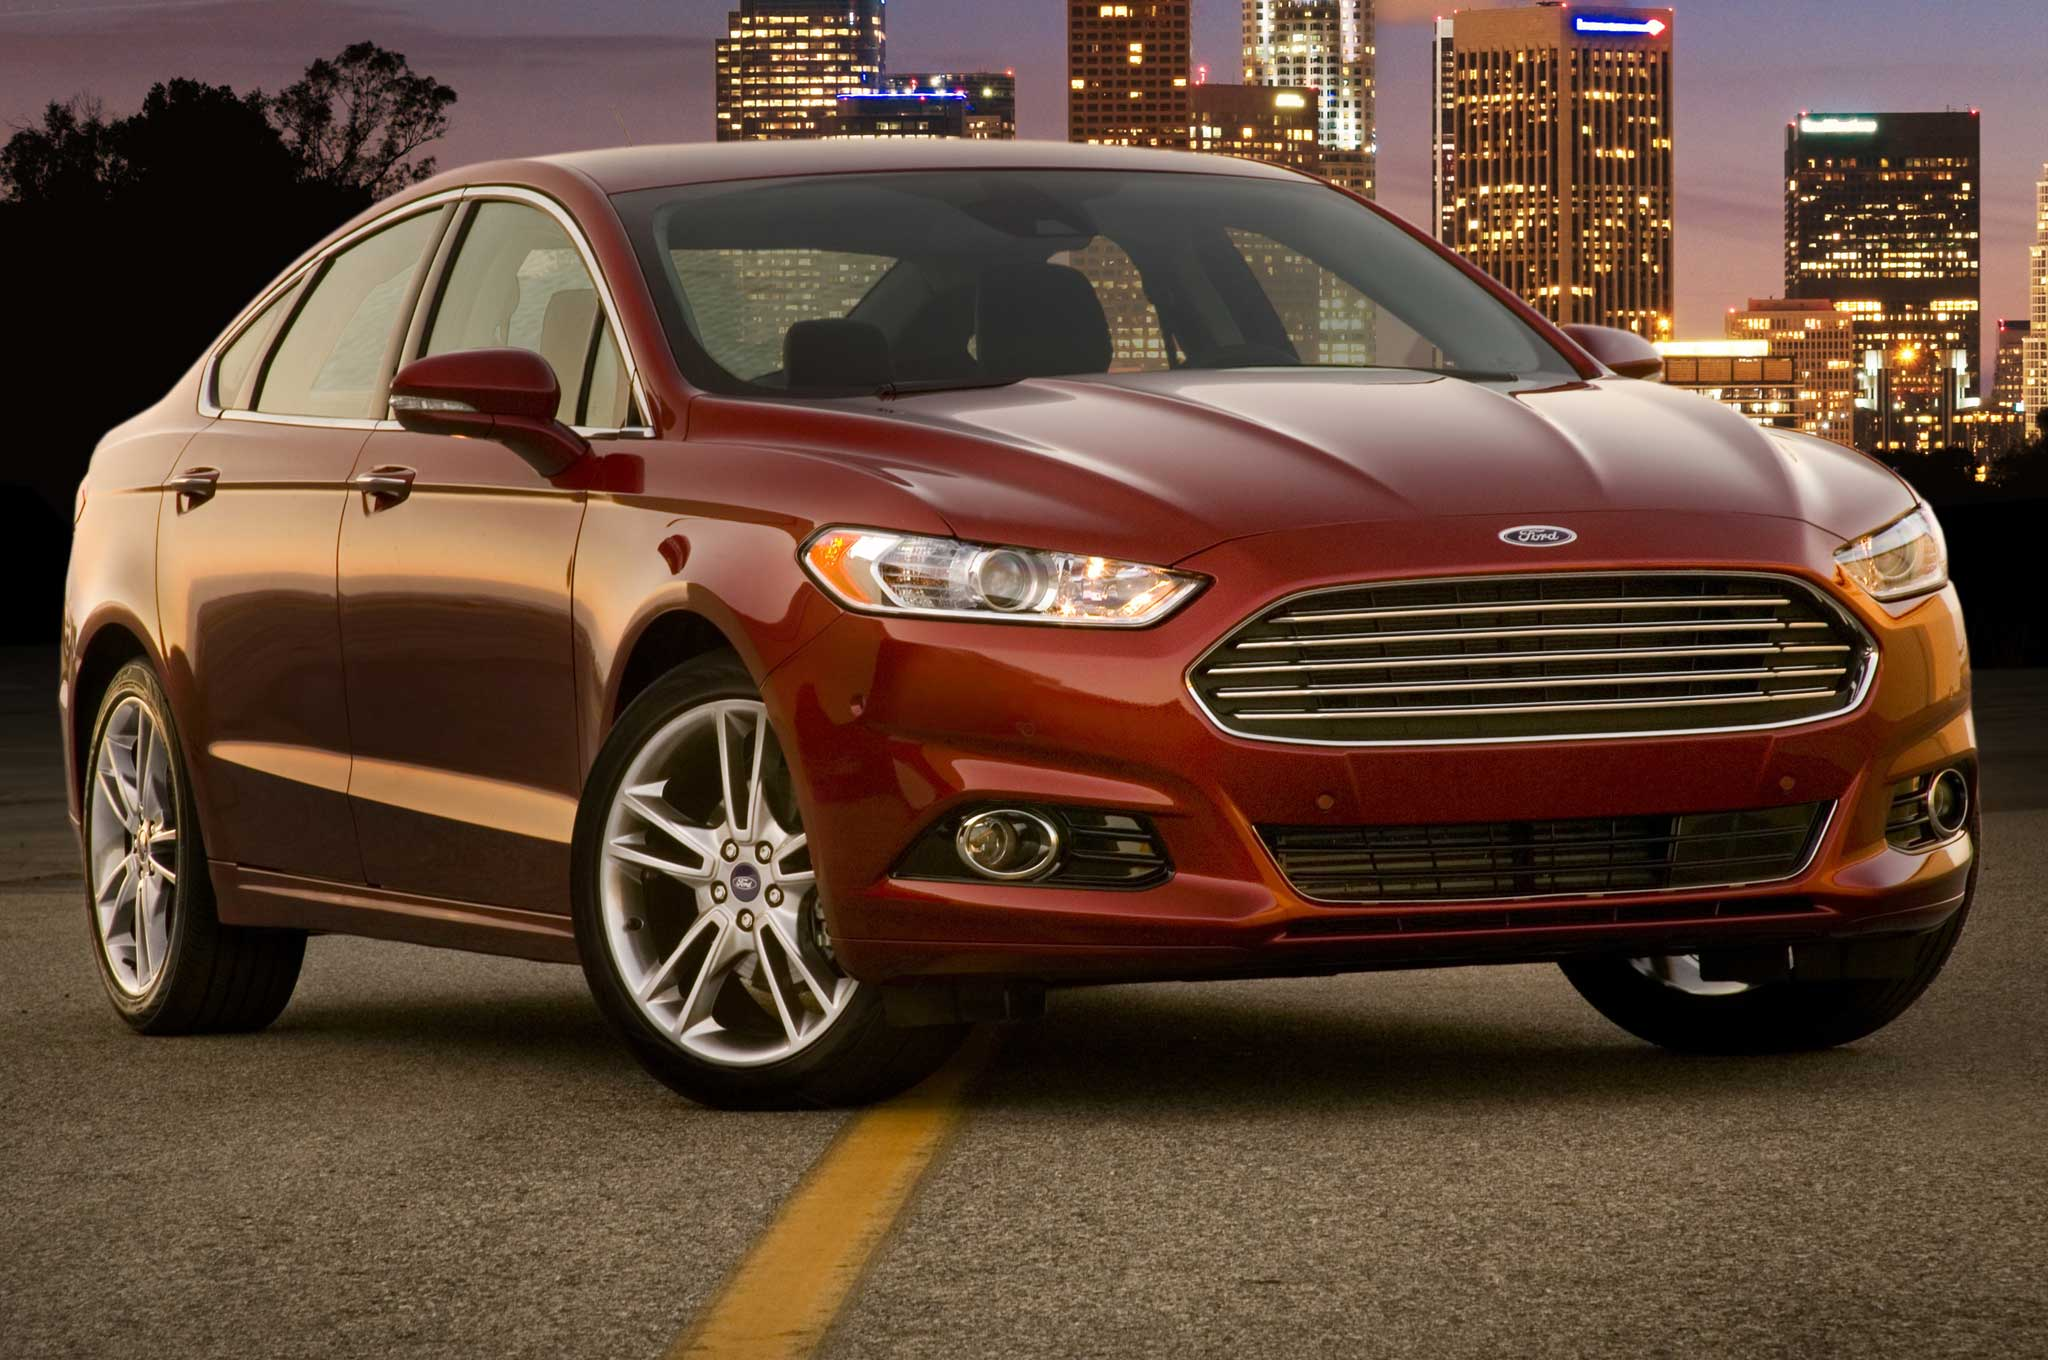 2015 Ford Fusion Colors >> Pictures 2015 Ford Fusion Bronze Fire News Wheel Exterior Colors